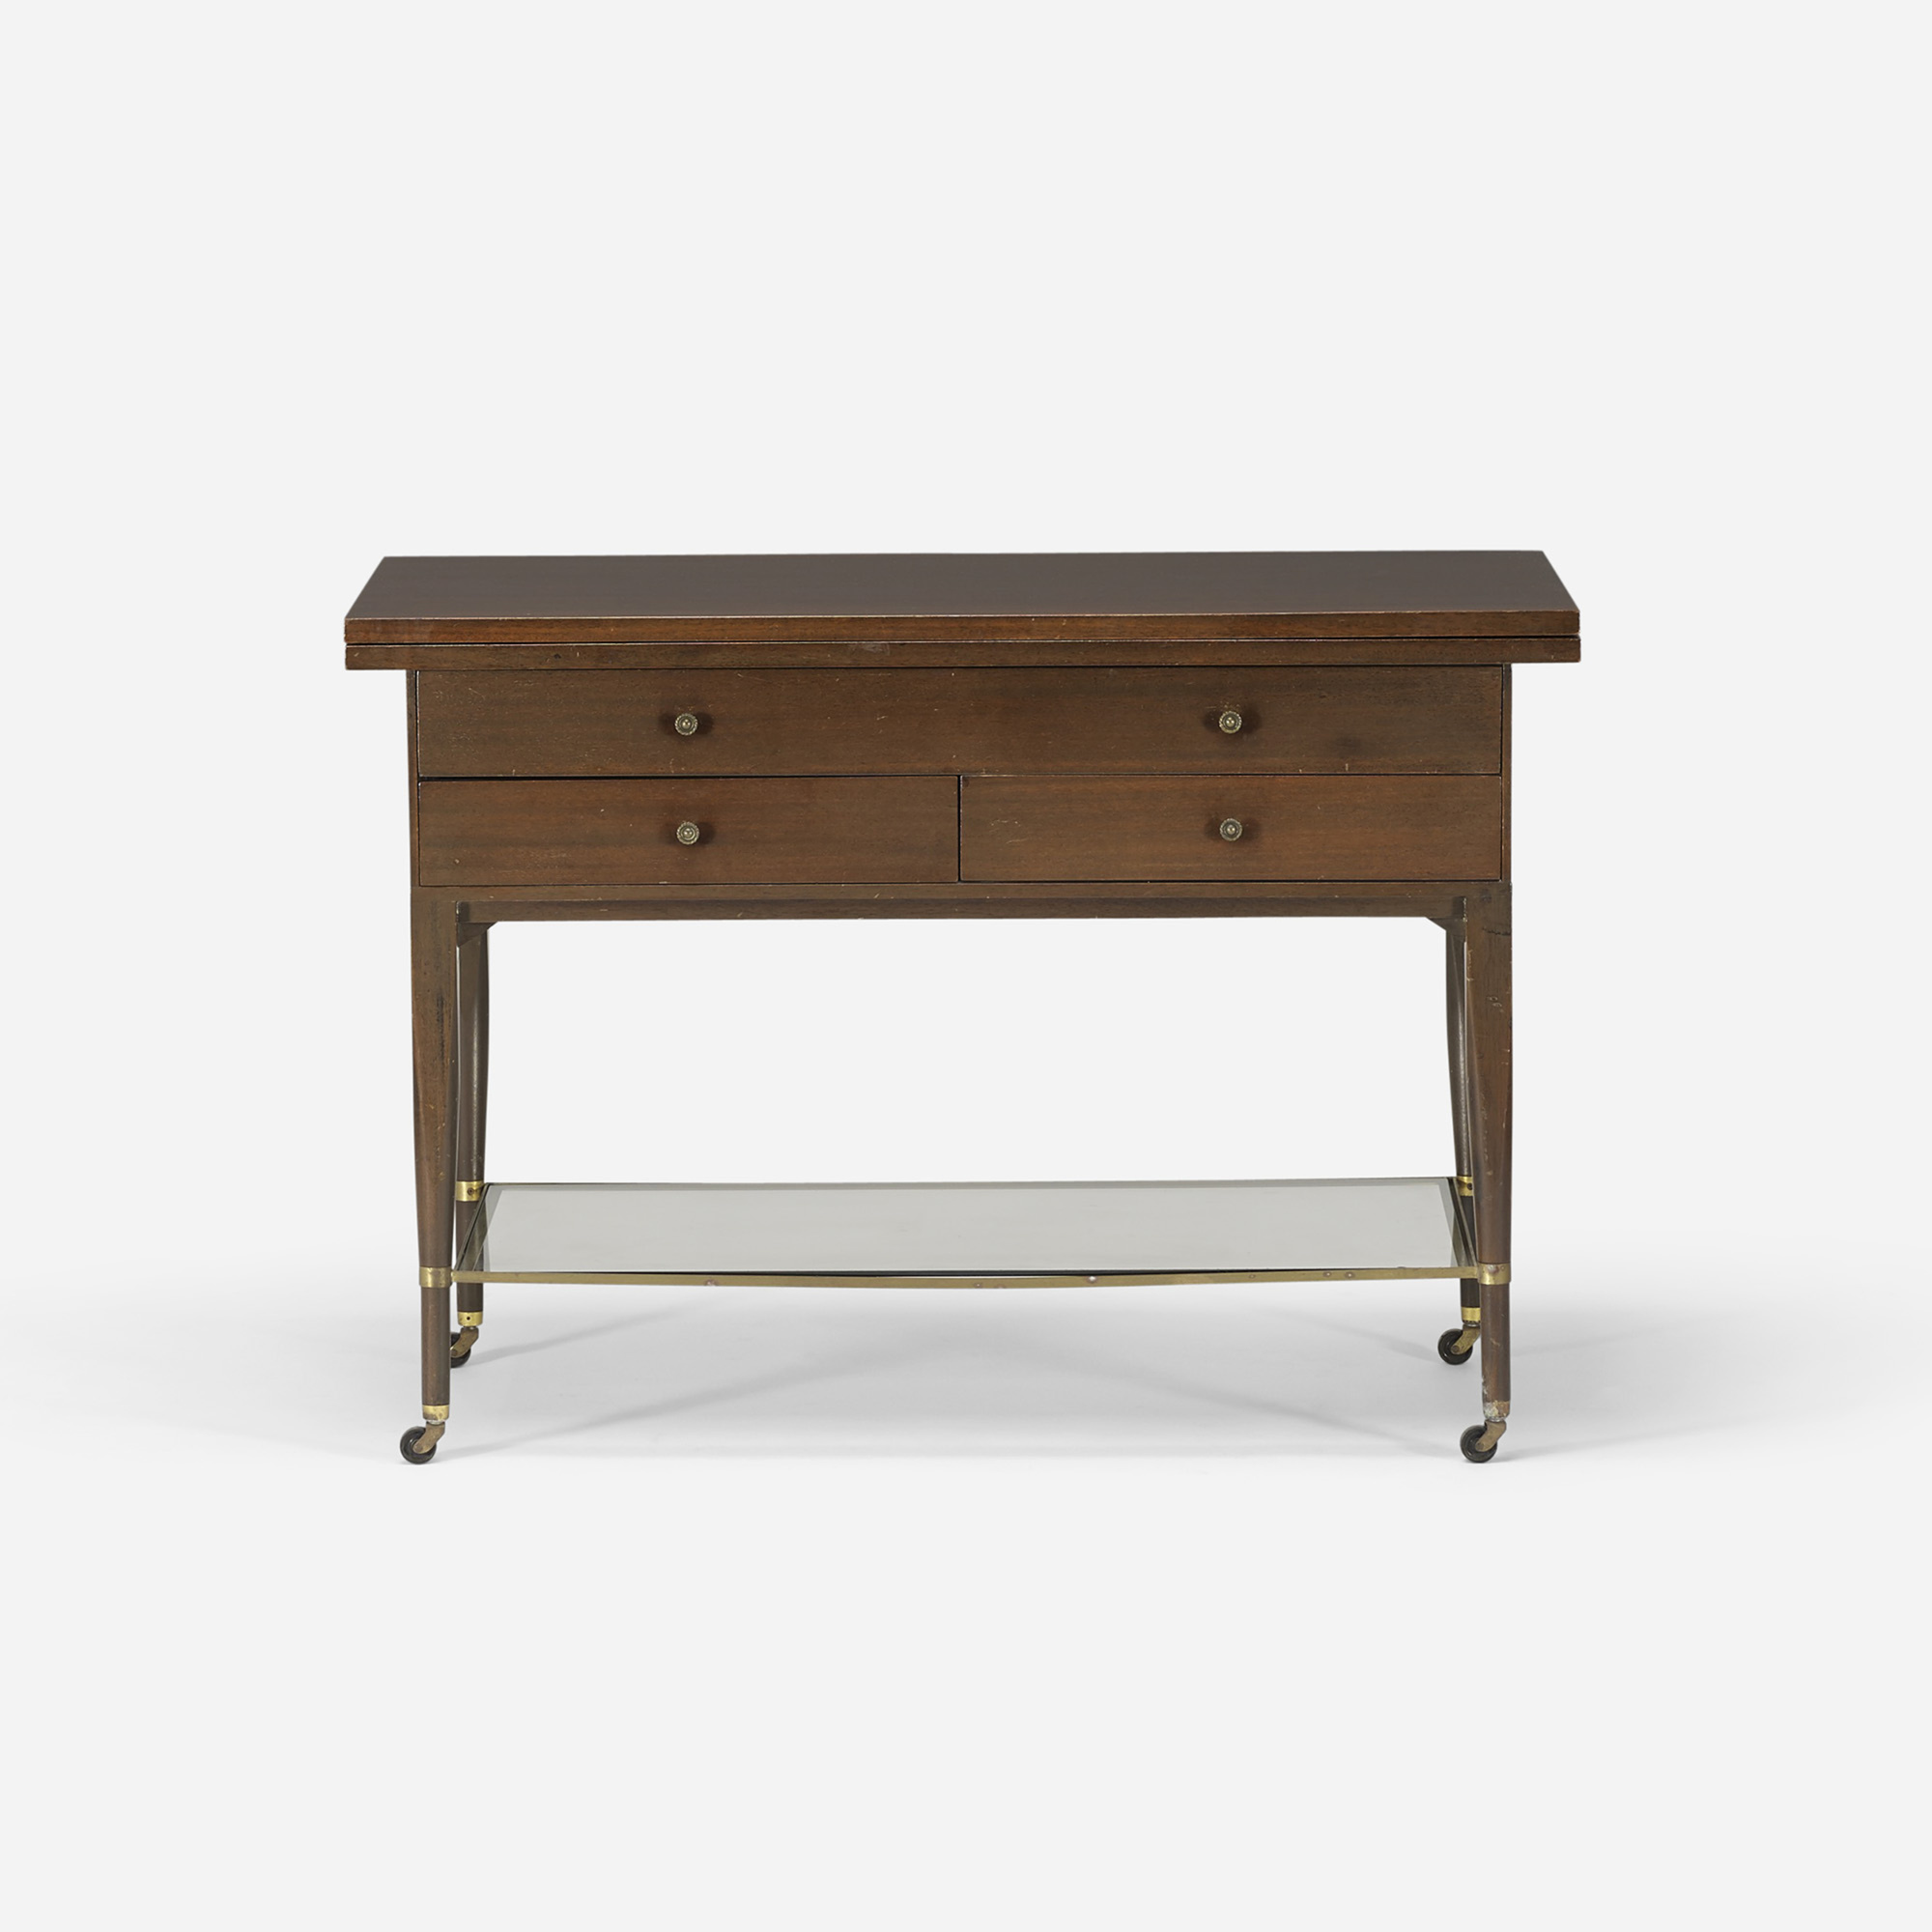 555: Paul McCobb / The Irwin Collection bar cart (1 of 4)